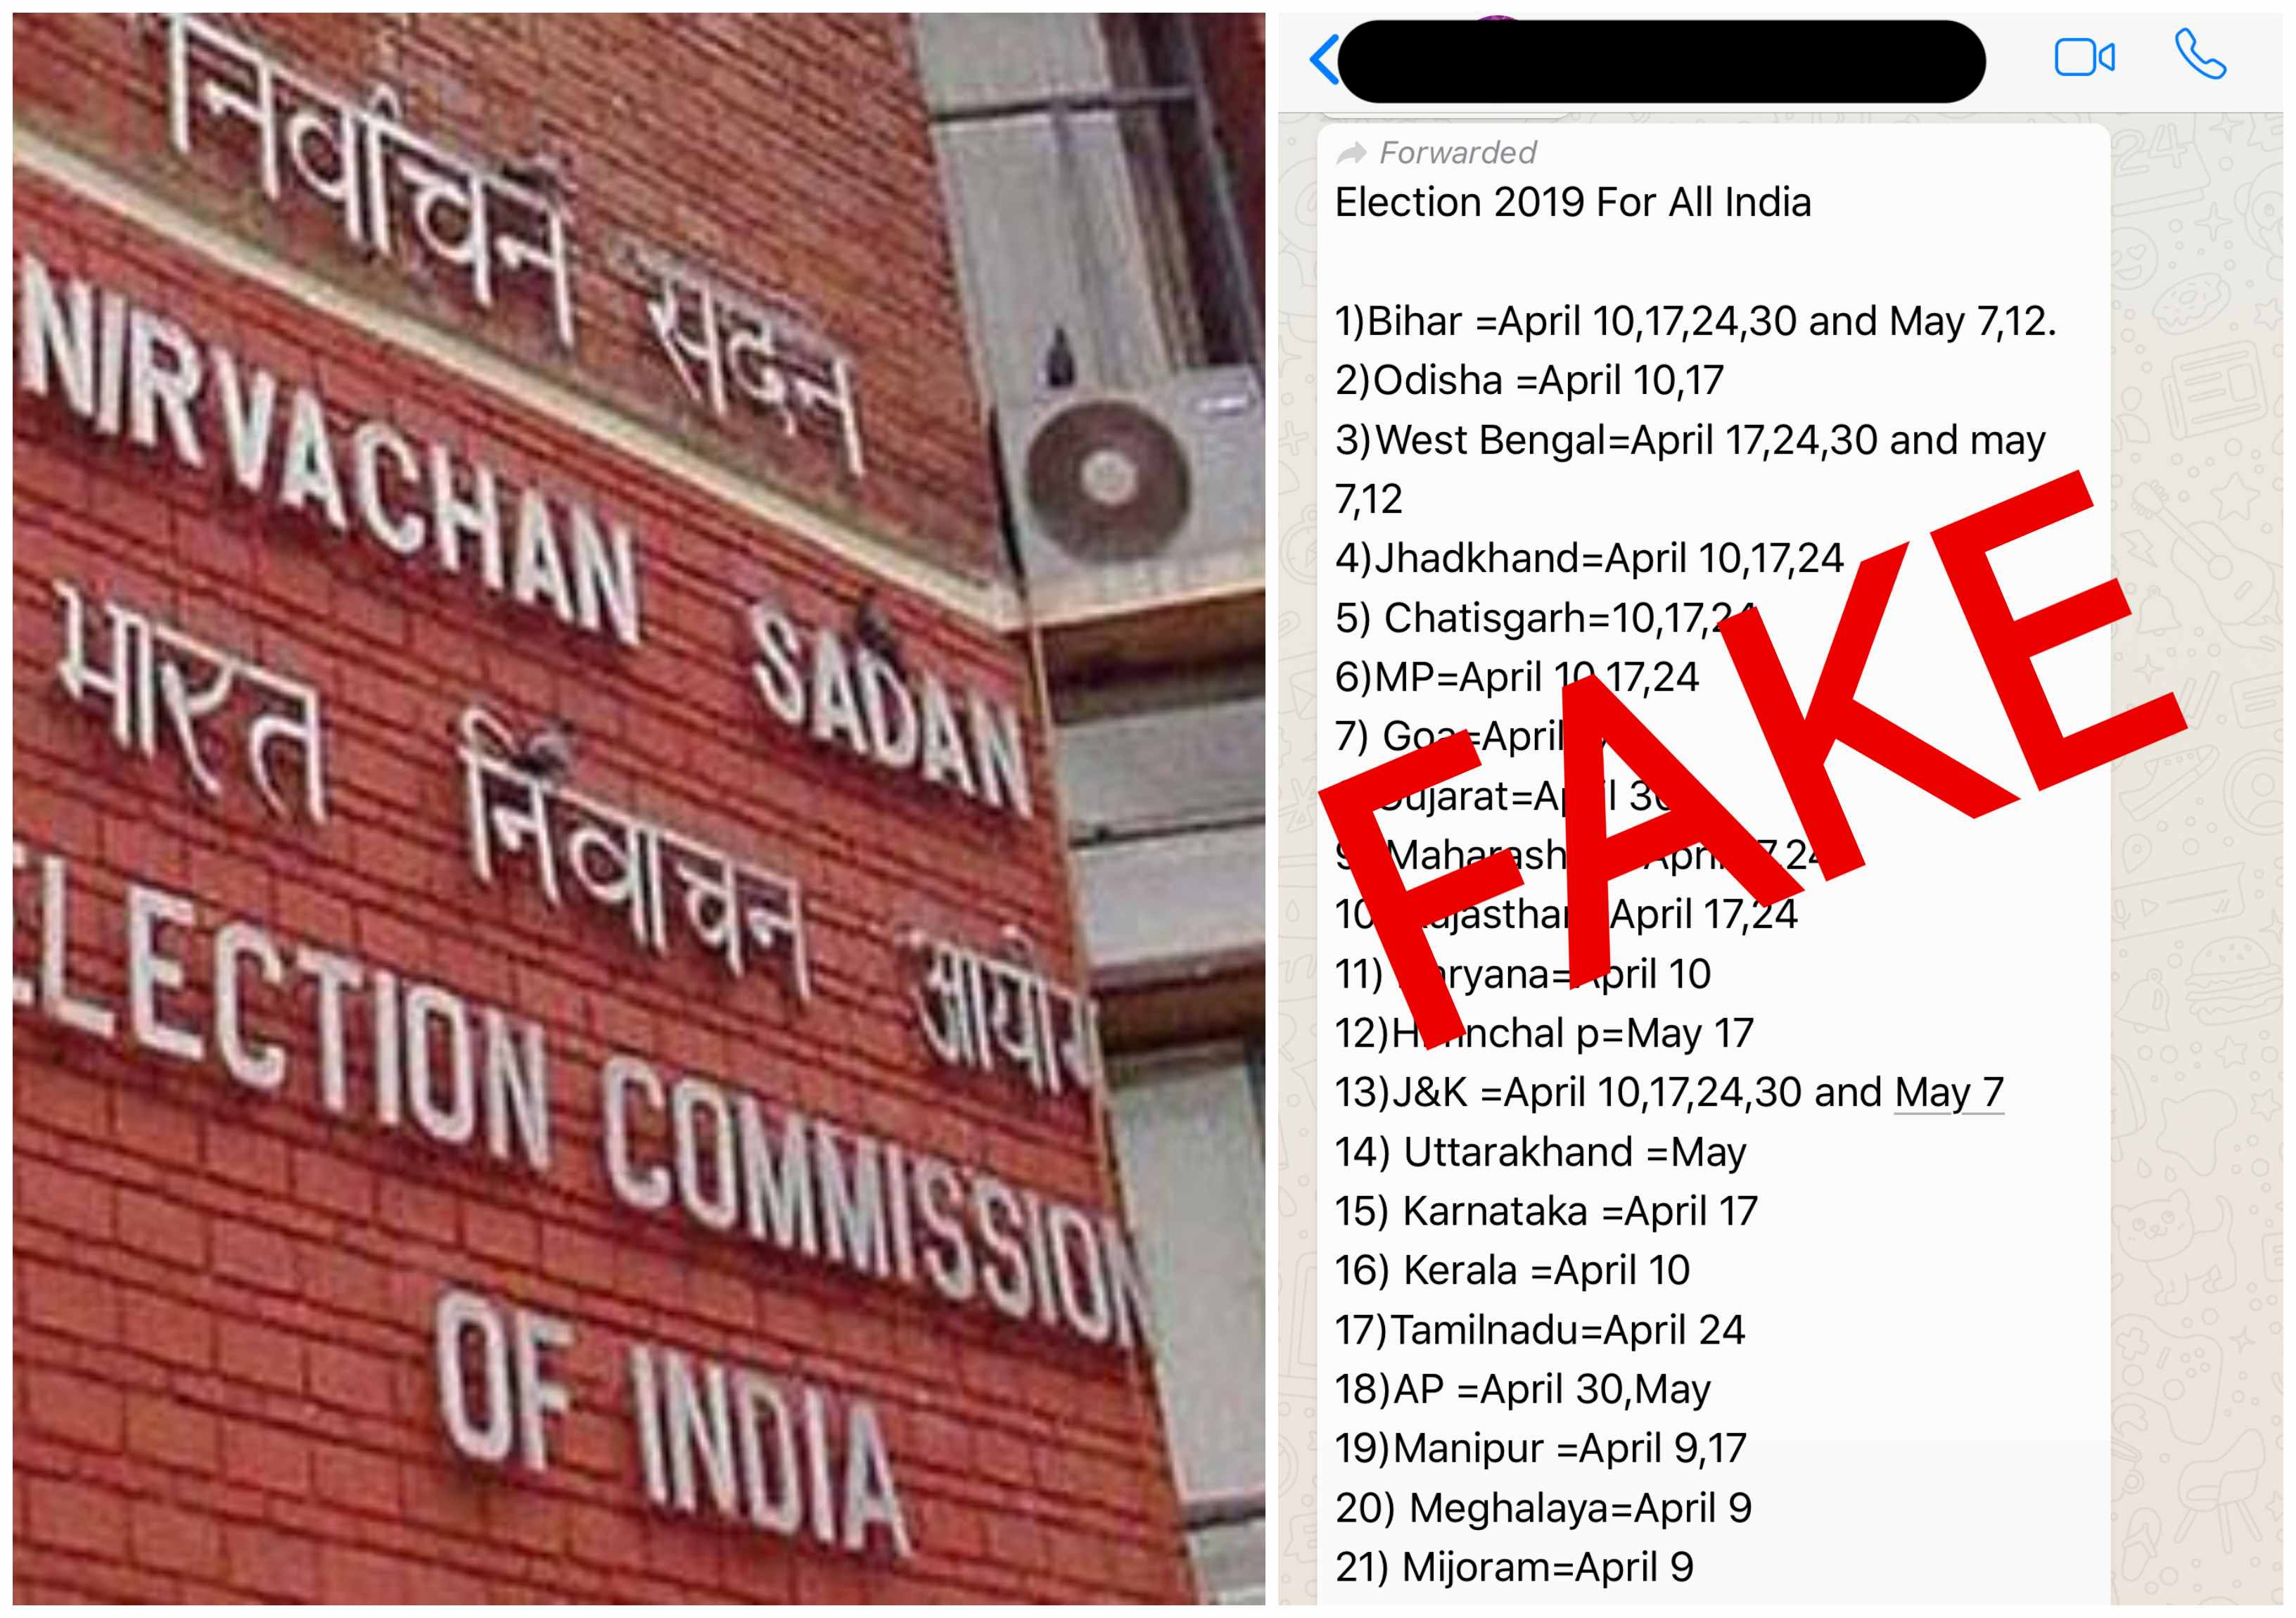 Fake, News, Fake News, Elections, Election, General, Polls, Schedule, WhatsApp, Forward, 2019, BJP, Congress, Election Commission, Delhi Police, New Delhi, NewsMobile, Mobile, News, Fact Check, Fact Checker, India